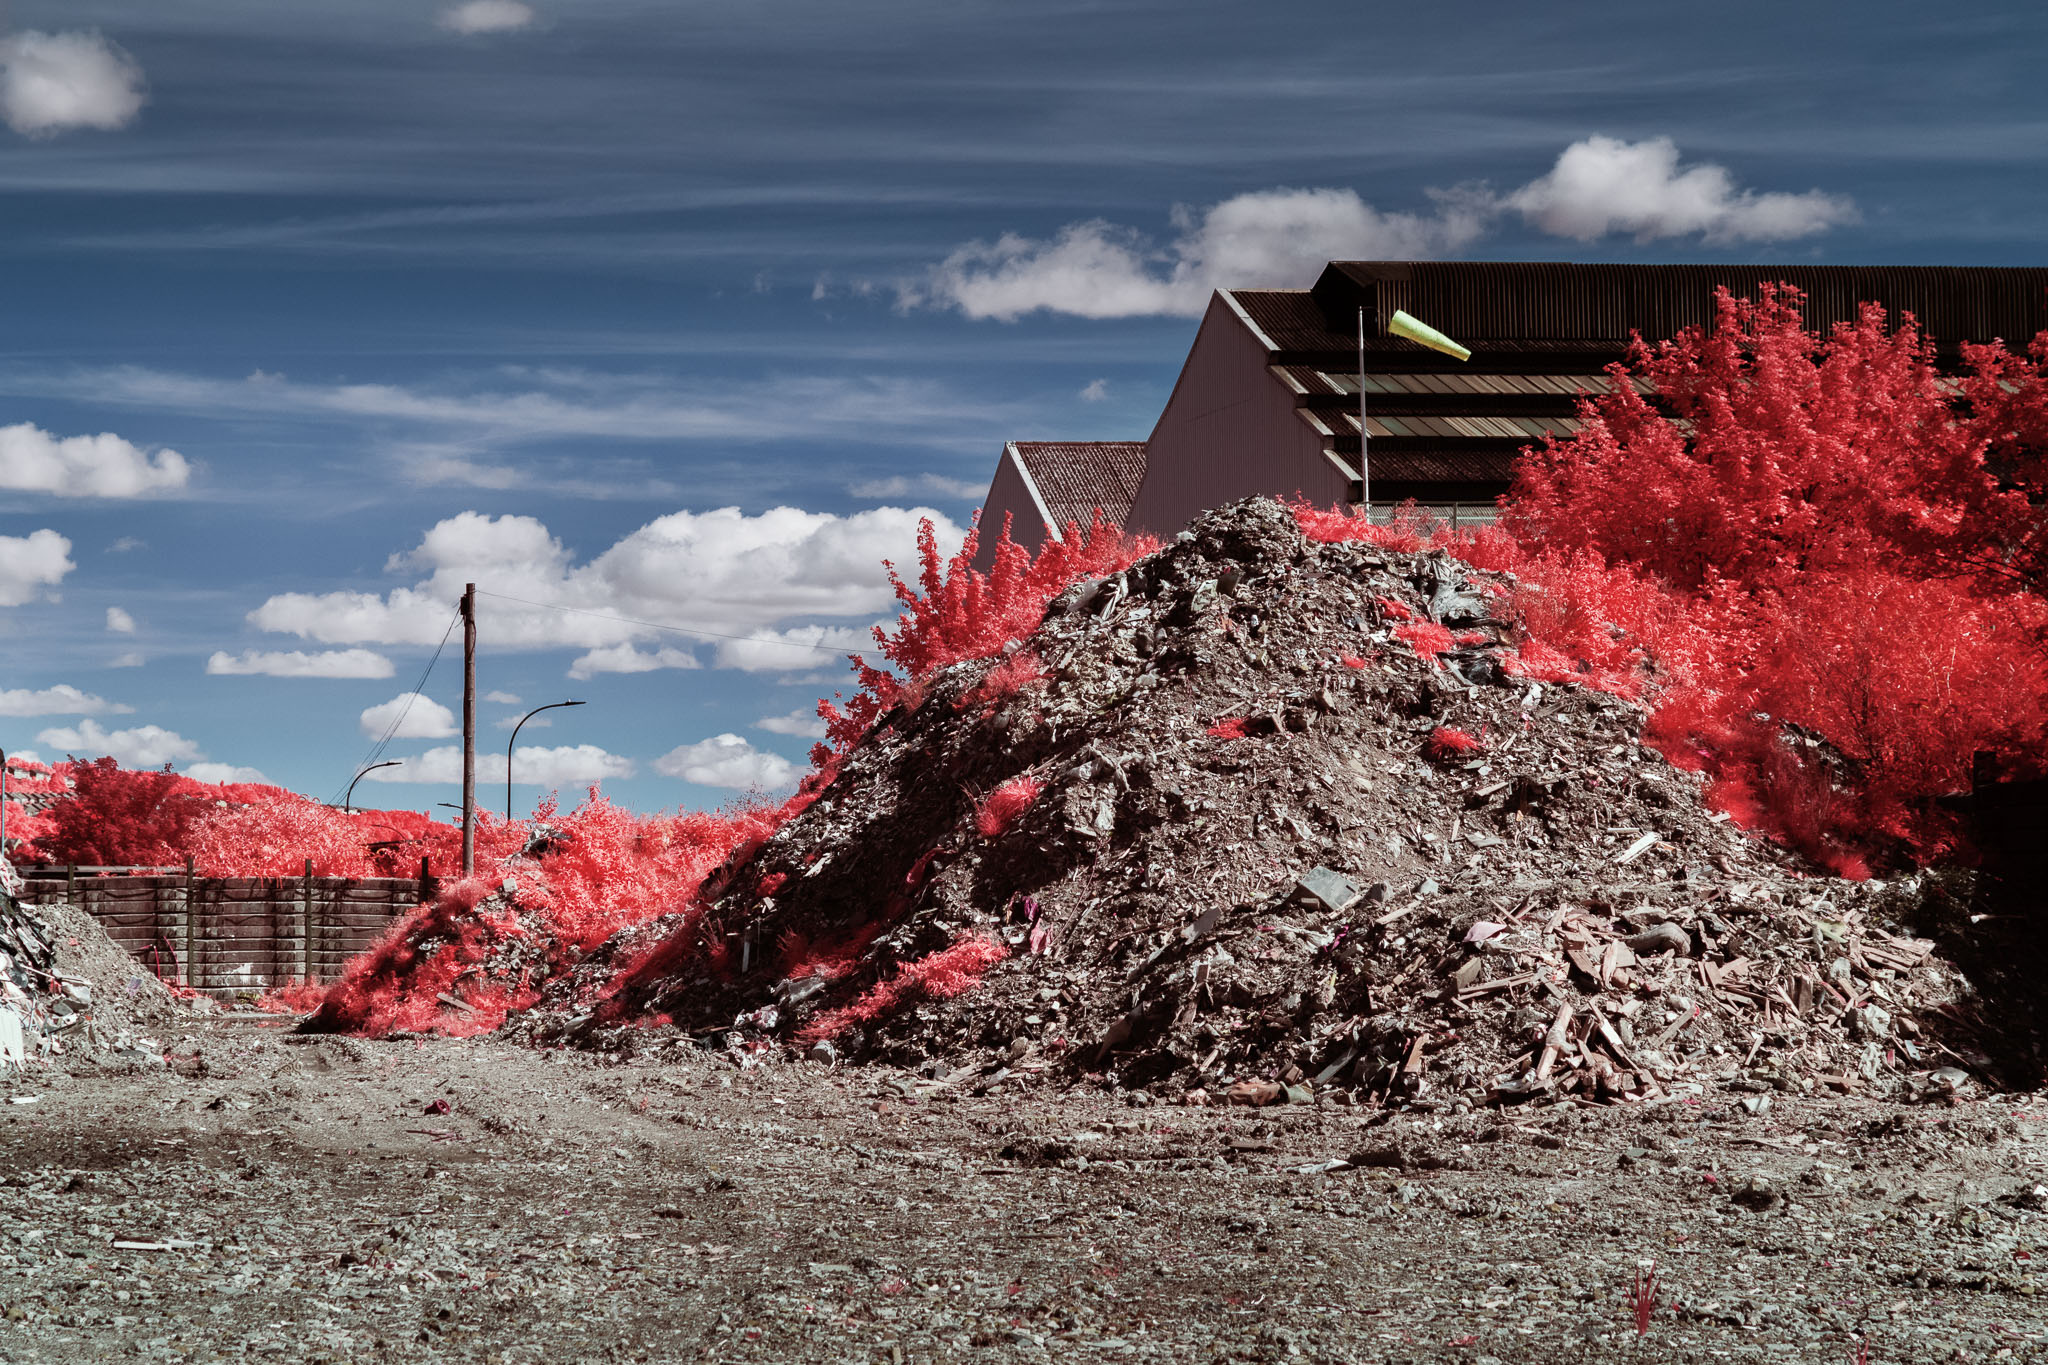 Kodak EIR Colour Infrared, Edgelands, Wasteland, Out of sight,  Dirt Mount ©Jonny Sutton